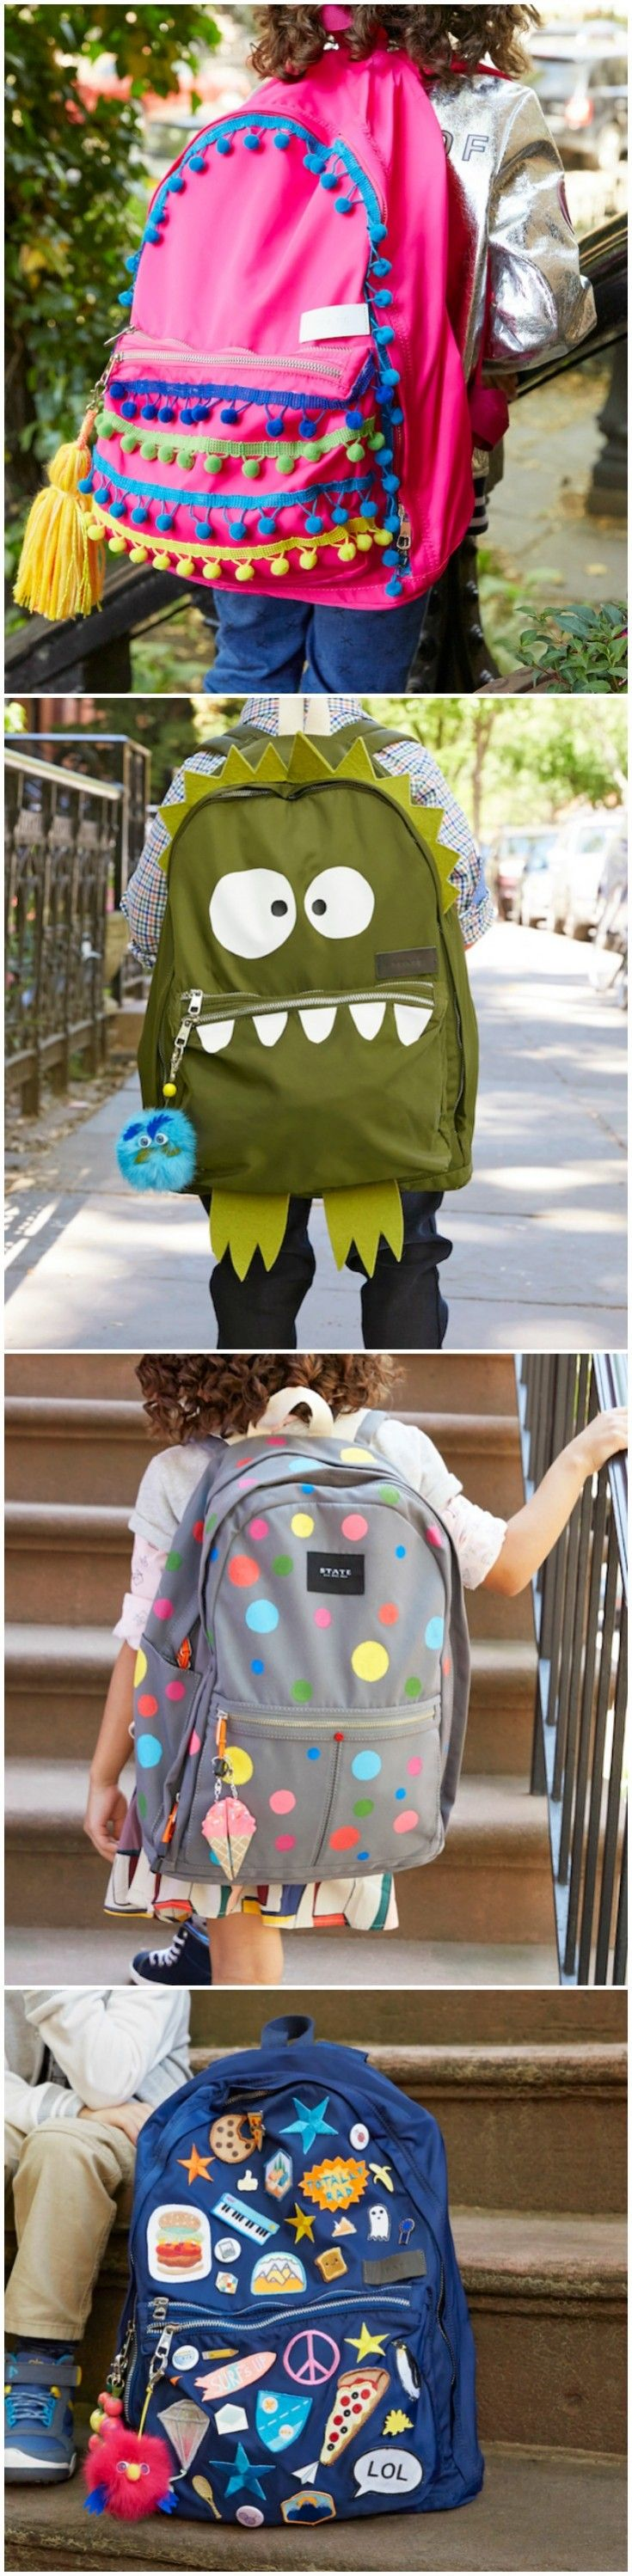 Why buy a new backpack - when you can get creative and makeover the one you already have? Kids will LOVE these unique ideas for personalized backpacks! via @diy_candy